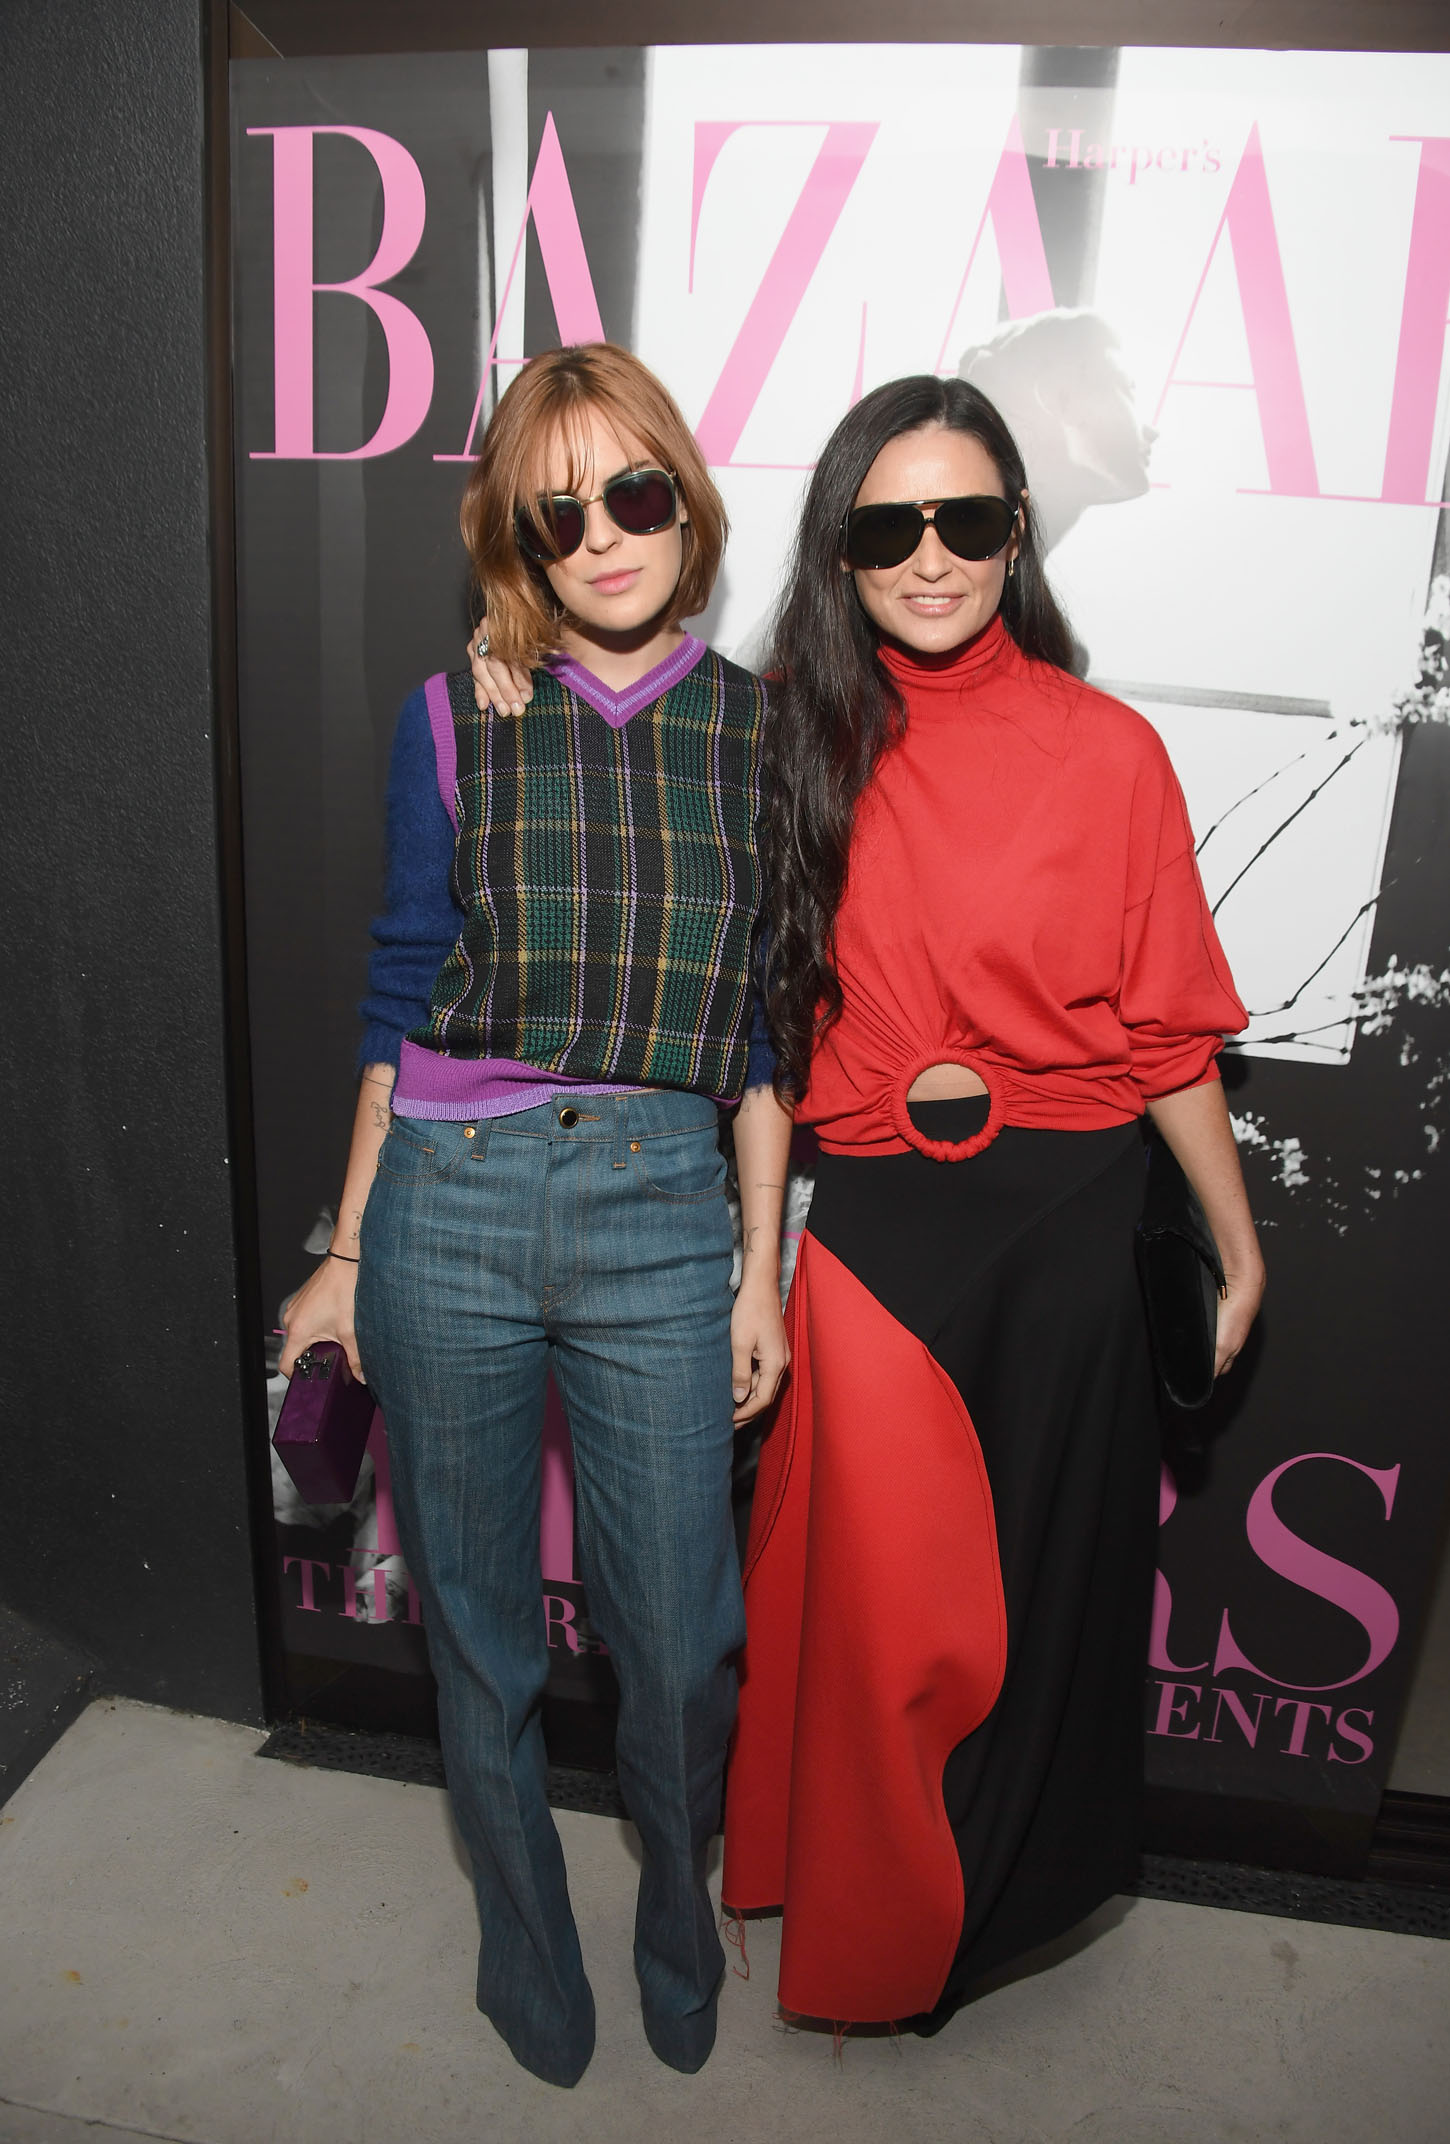 LOS ANGELES, CA - JUNE 08:  Tallulah Belle Willis (L) and Demi Moore attend Glenda Bailey's Book Launch Celebration at Eric Buterbaugh Los Angeles on June 8, 2017 in Los Angeles, California.  (Photo by Matt Winkelmeyer/Getty Images)